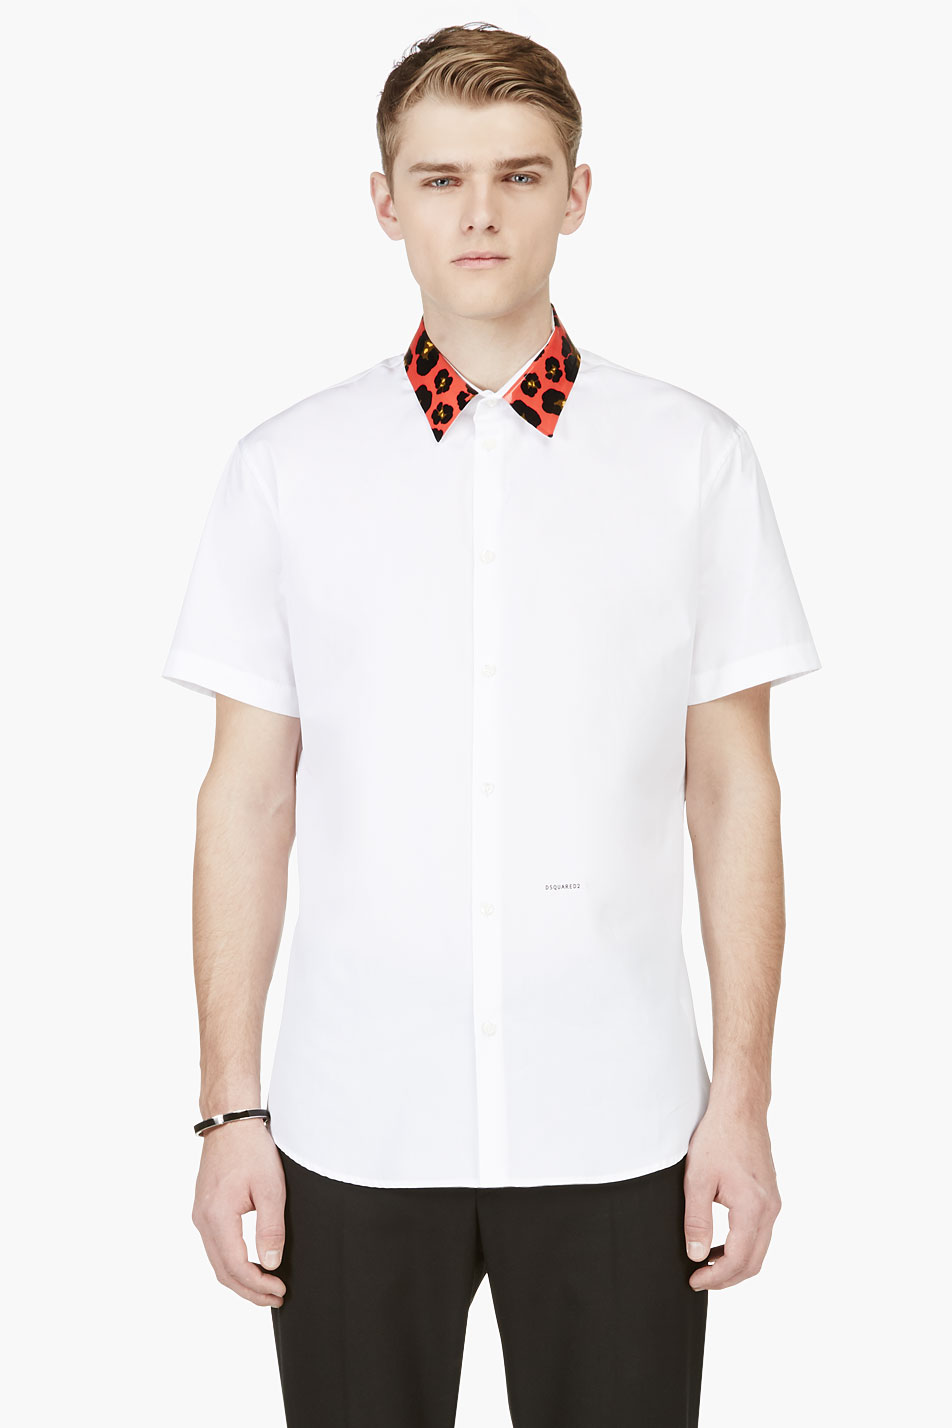 A casual classic, this white short sleeve button-down shirt will improve any gentleman's wardrobe.